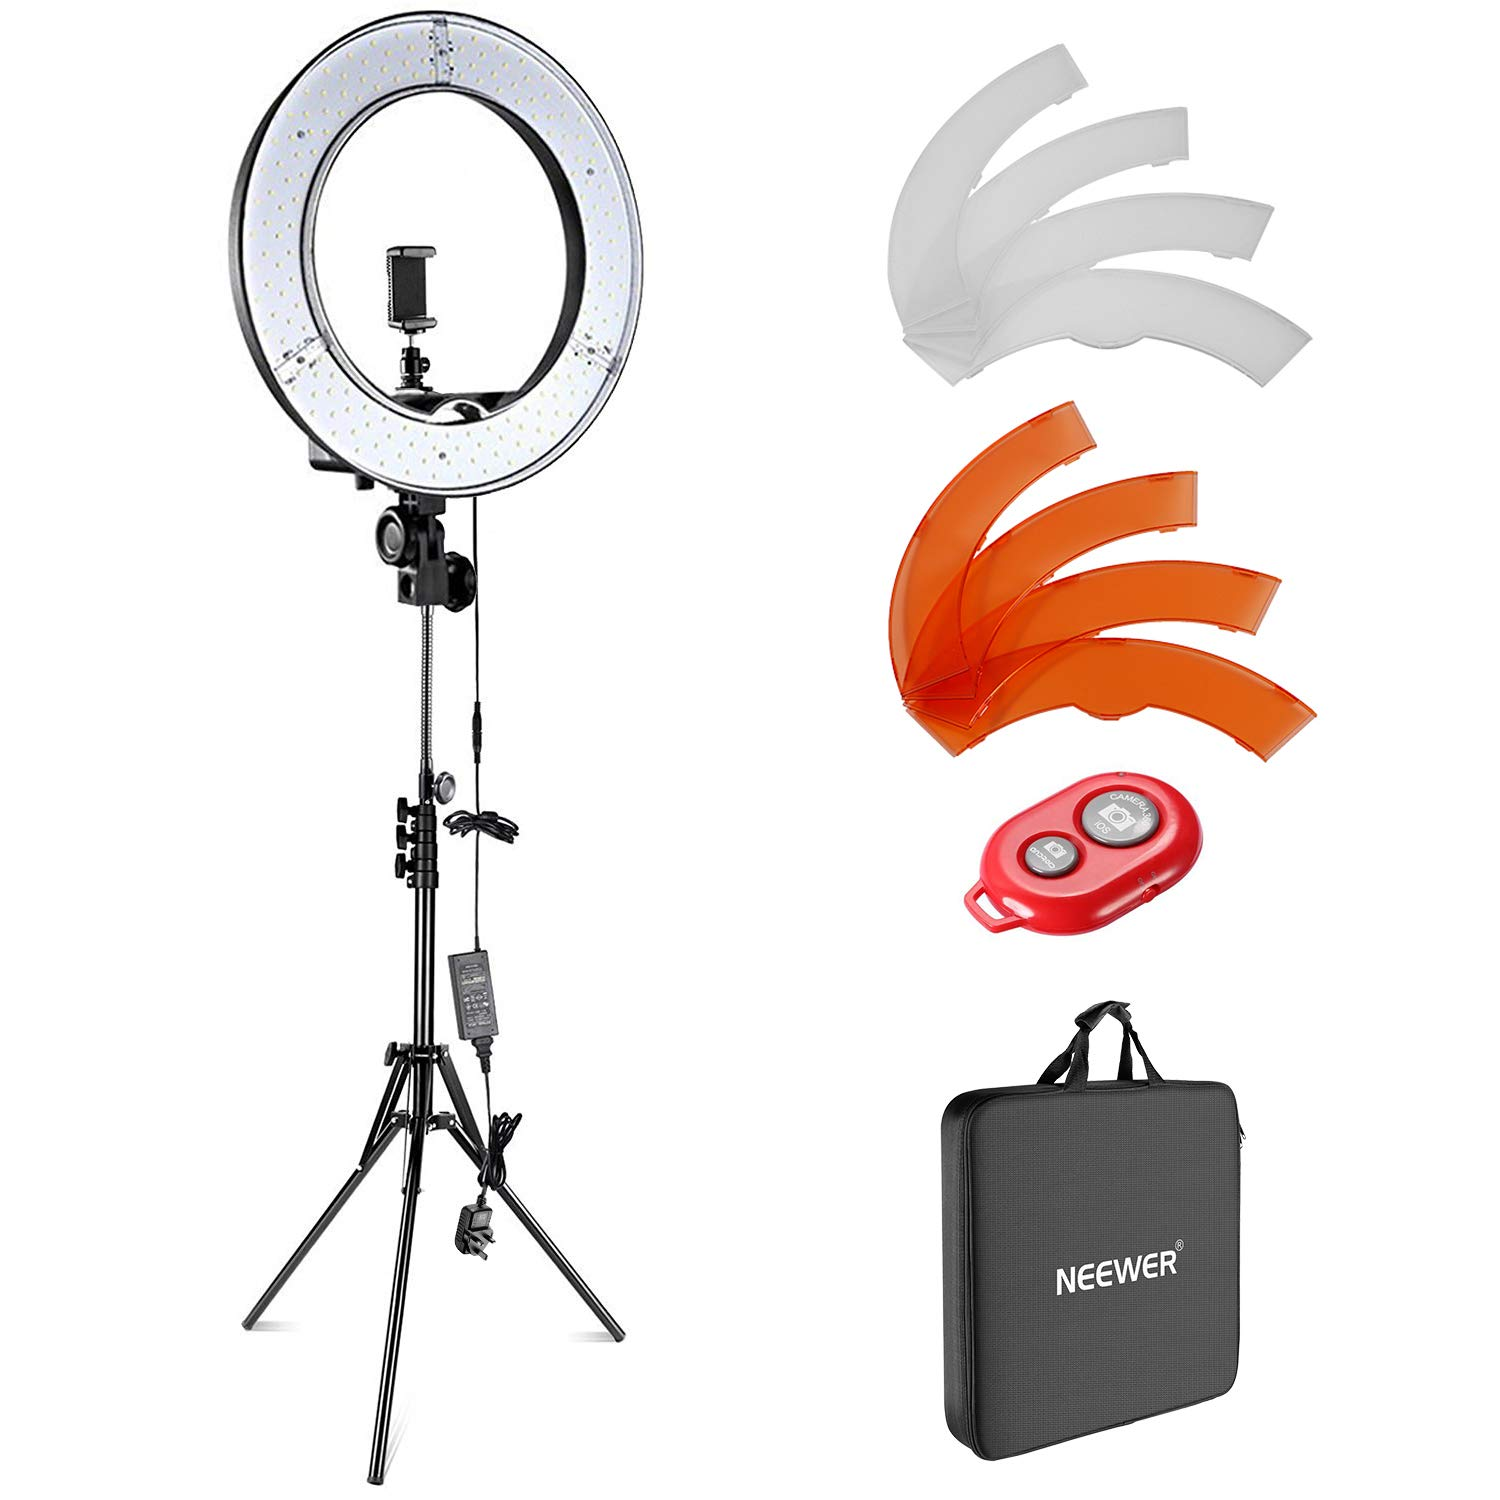 Neewer Camera Photo Video Lightning Kit for £51.34